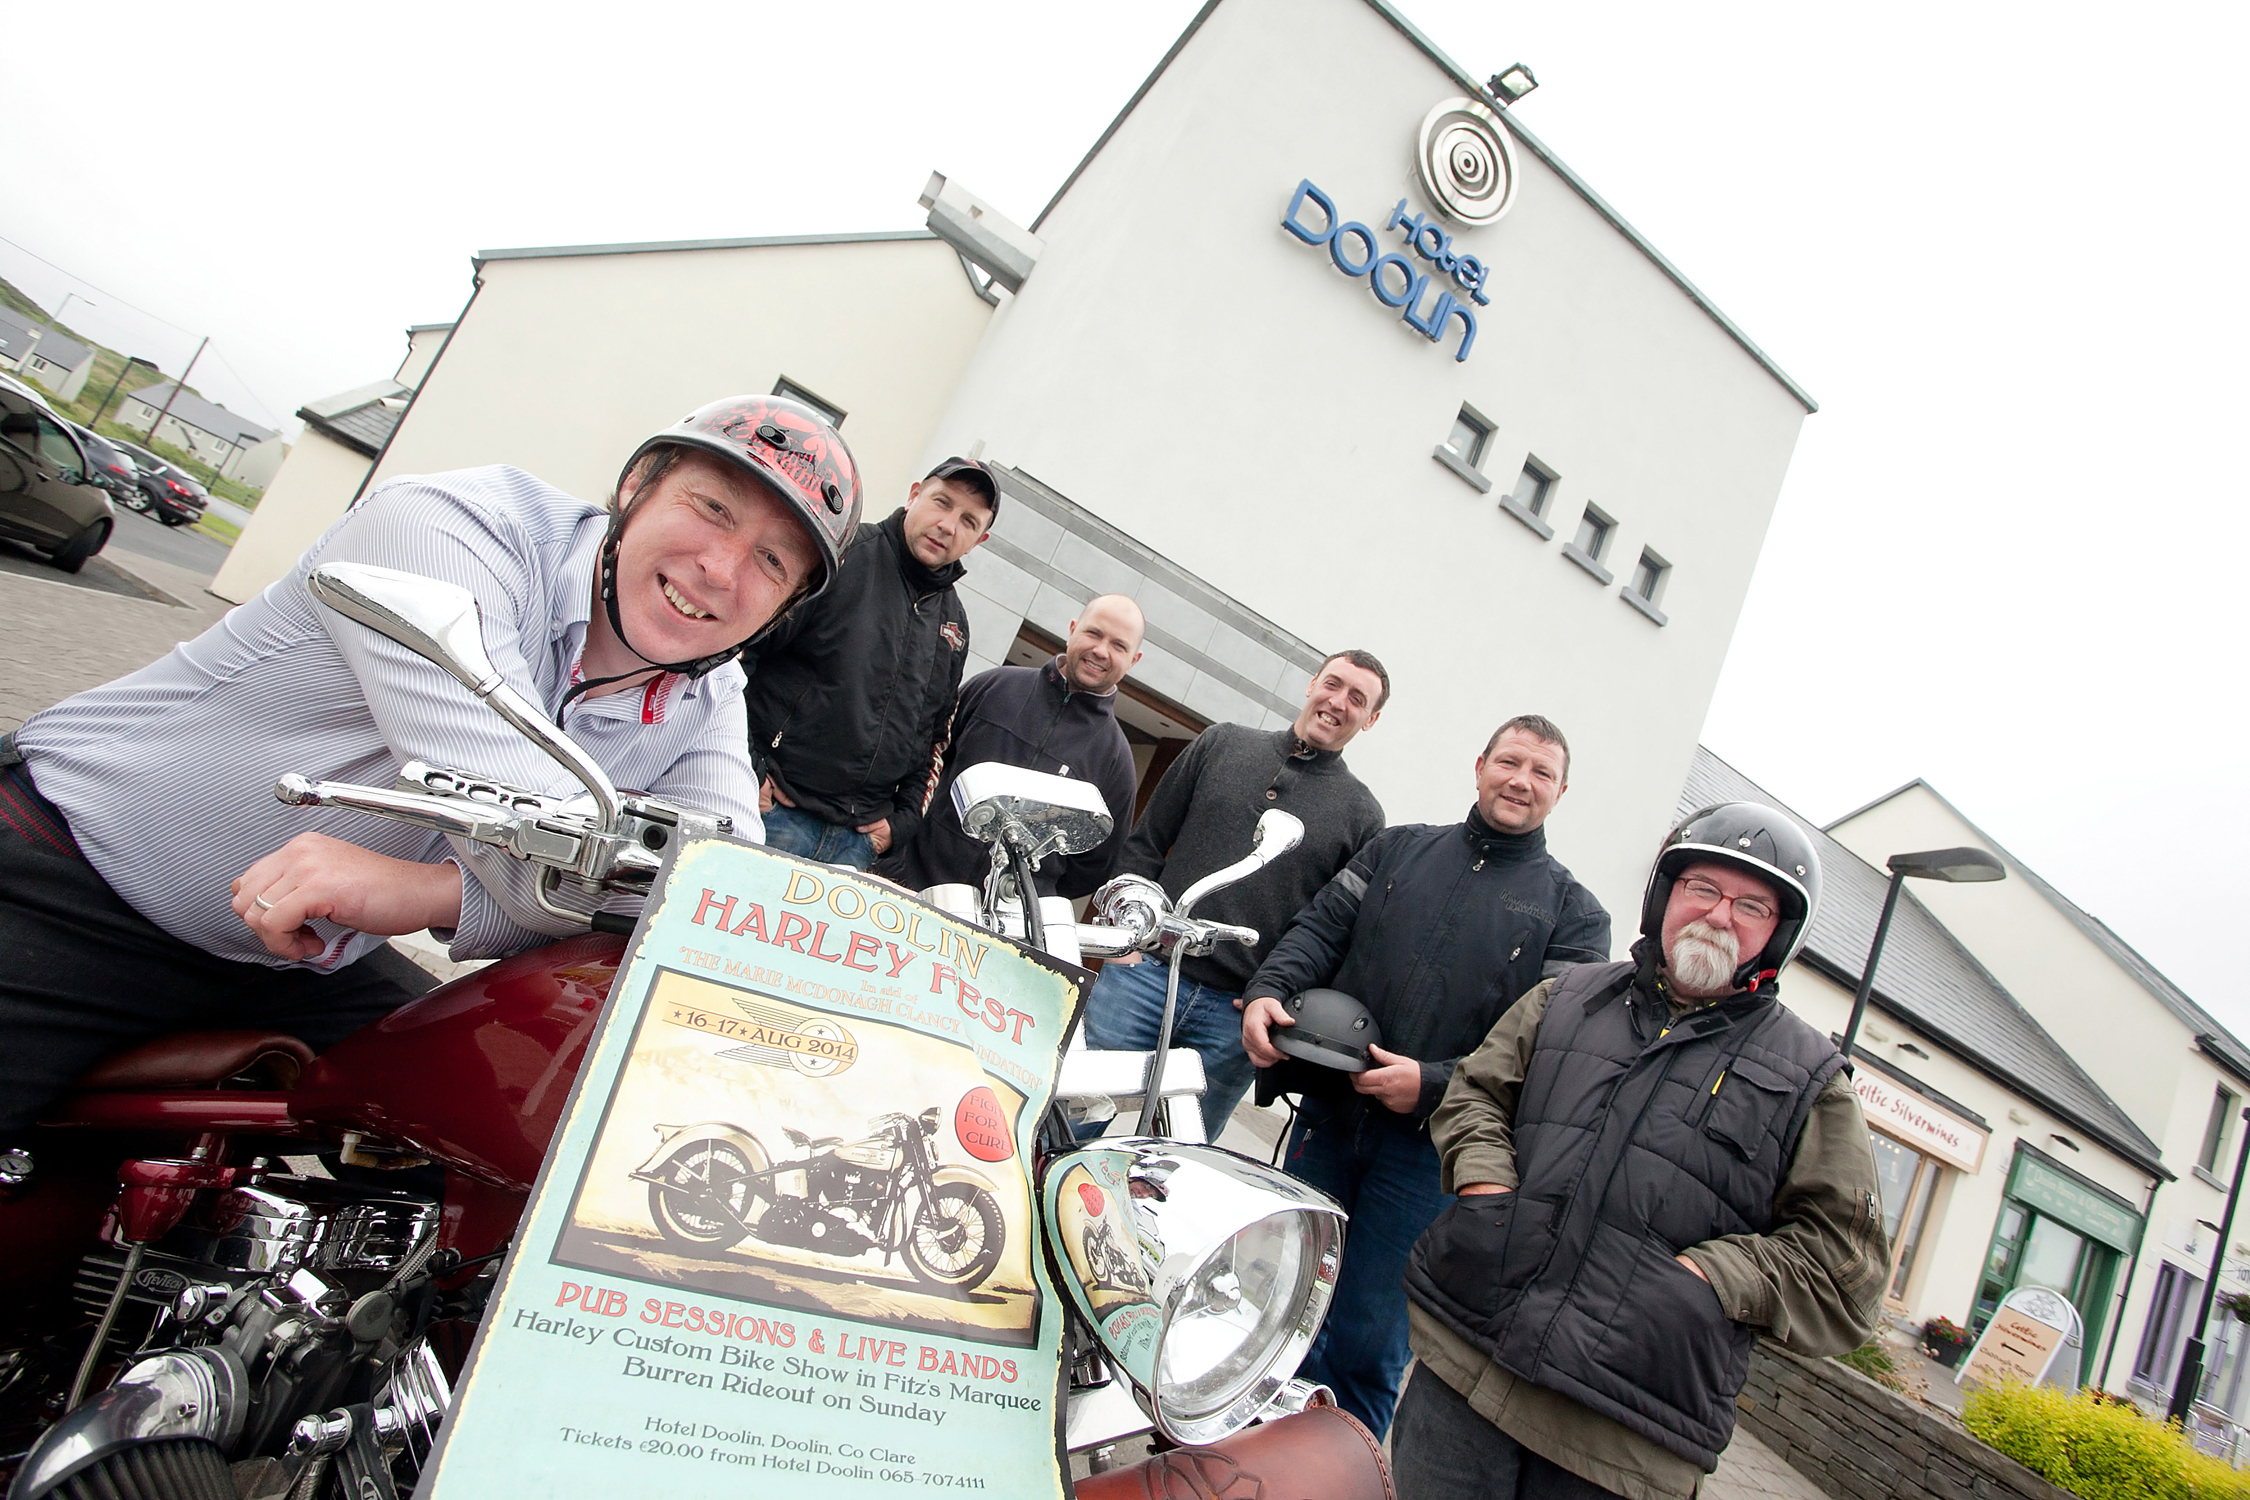 Donal Minihane-general manger of Hotel Doolin gets a feel for the wheels with organisers Mark Clancy, John Clancy, John McDonagh, James Clancy and Jimmy Boyle ahead of the Doolin Harley Fest on 16th and 17th of August in aid of the Marie McDonagh Clancy Foundation. Photograph by Yvonne Vaughan